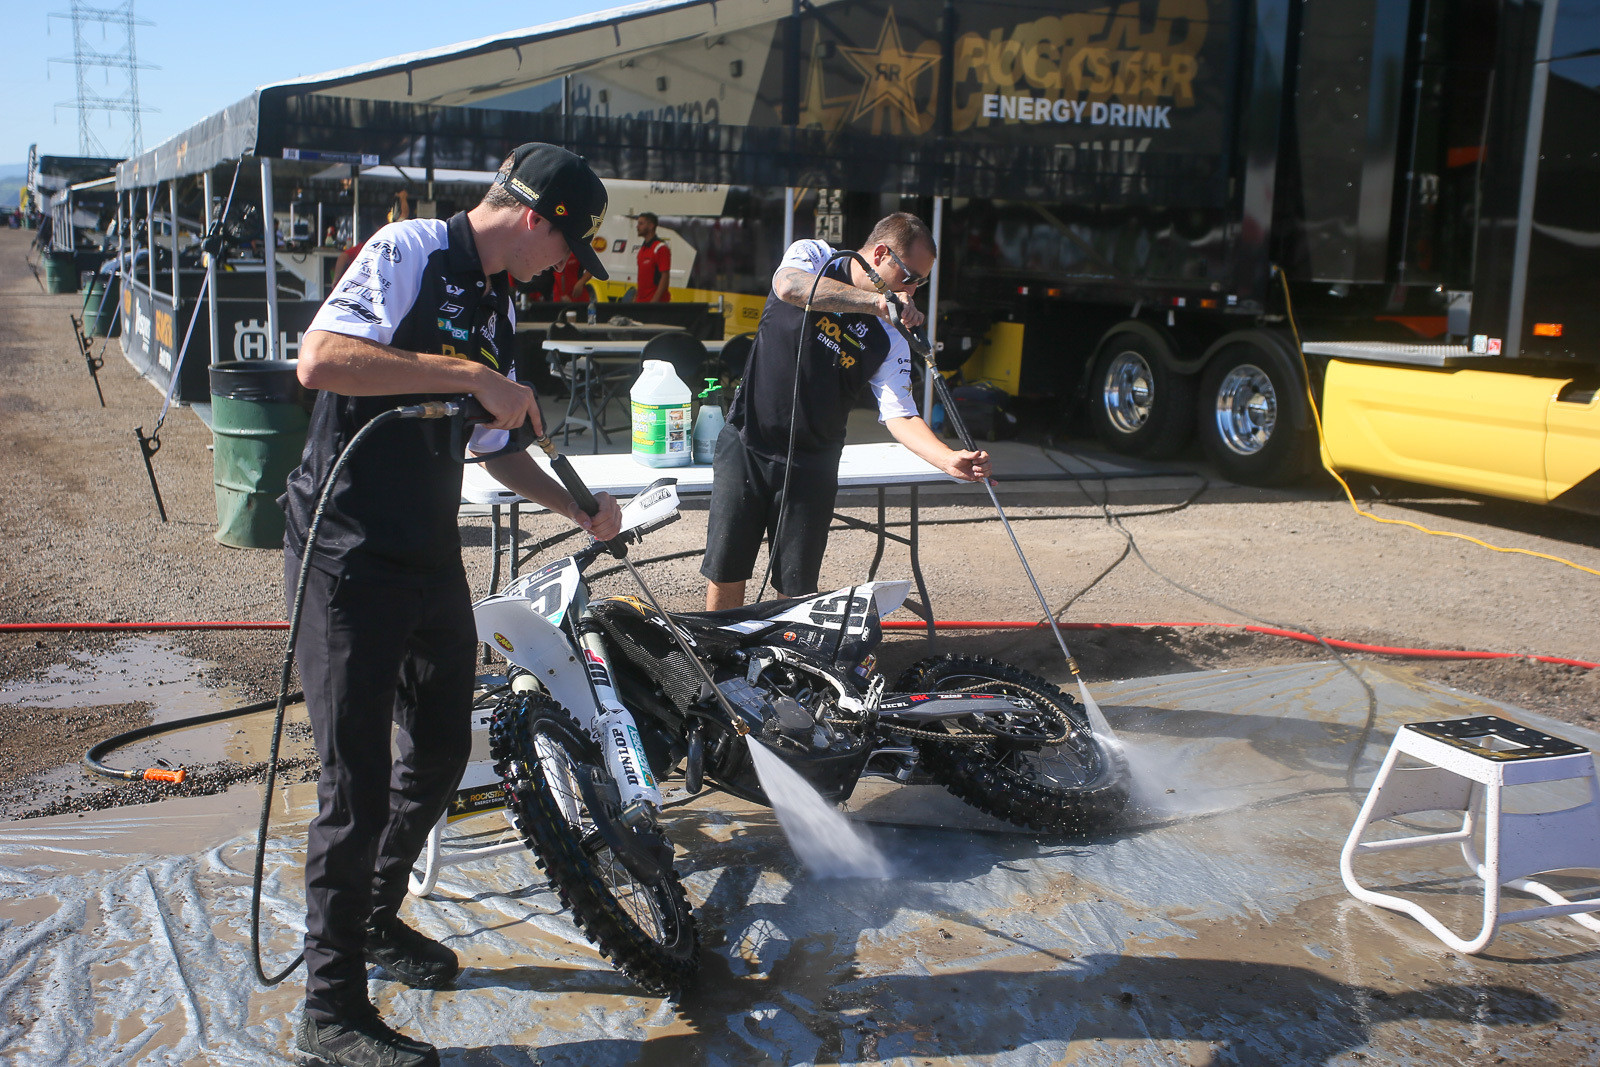 With Jason Anderson out with injuries, C-Lo was helping out on bike washing duties and wherever else he could pitch in.